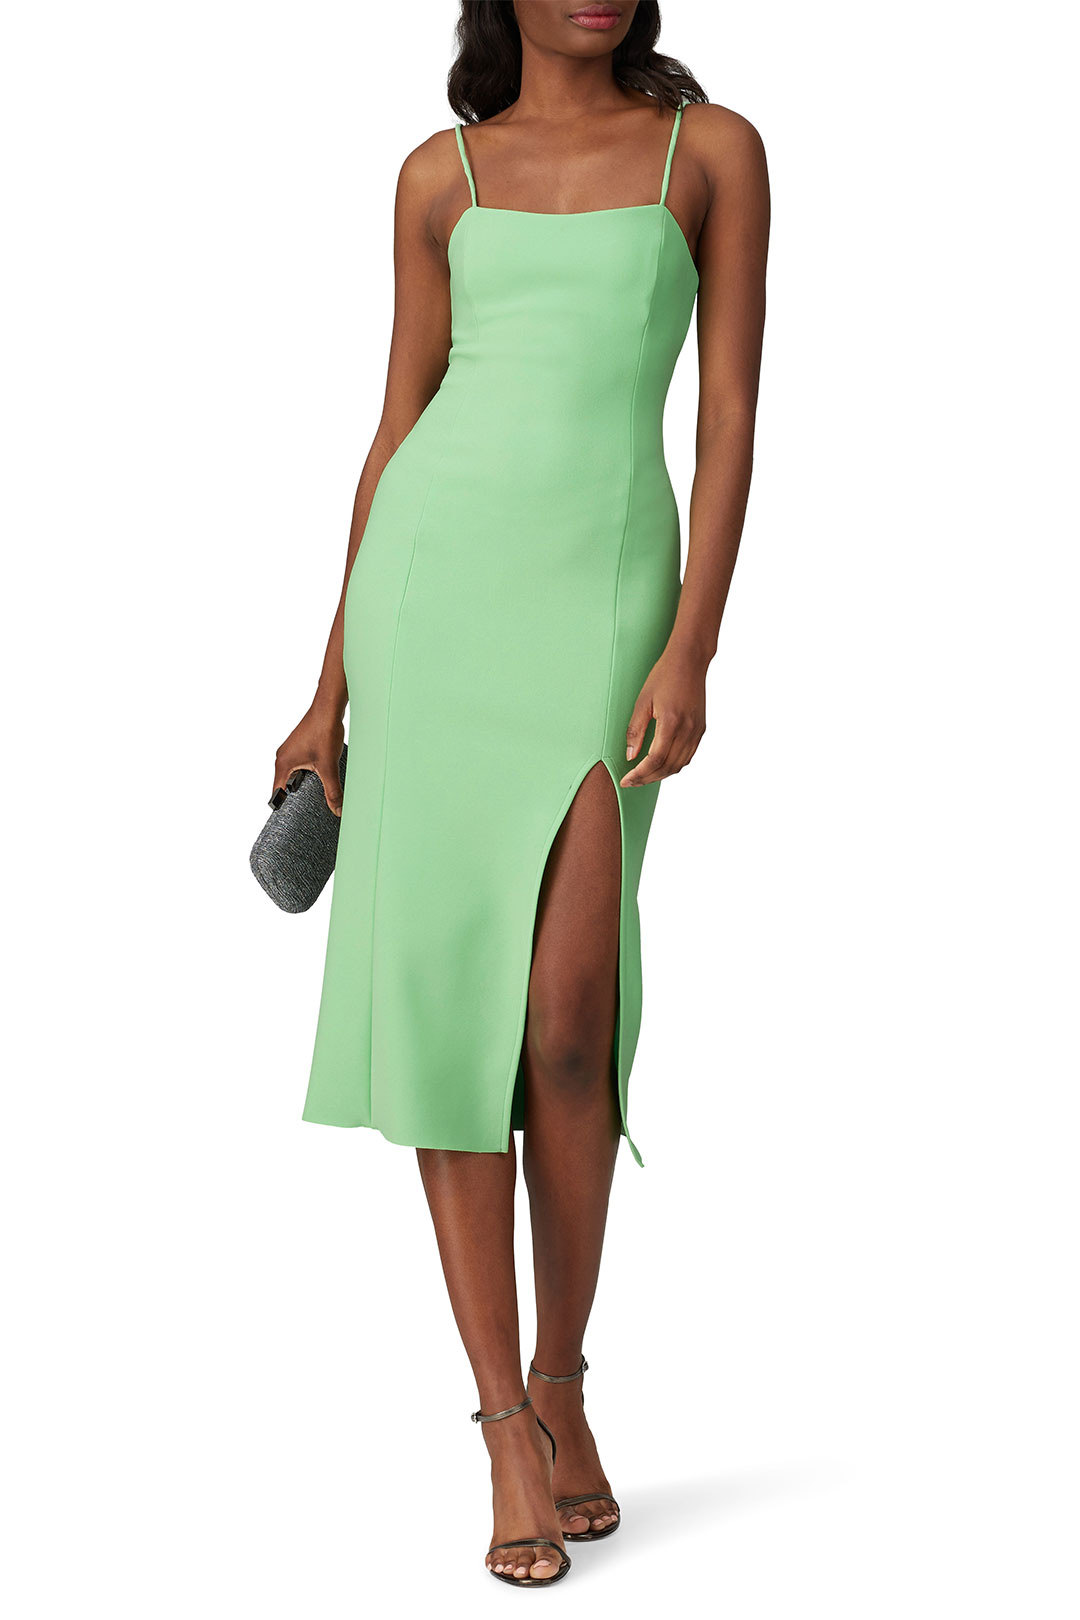 green midi dress for spring wedding guests